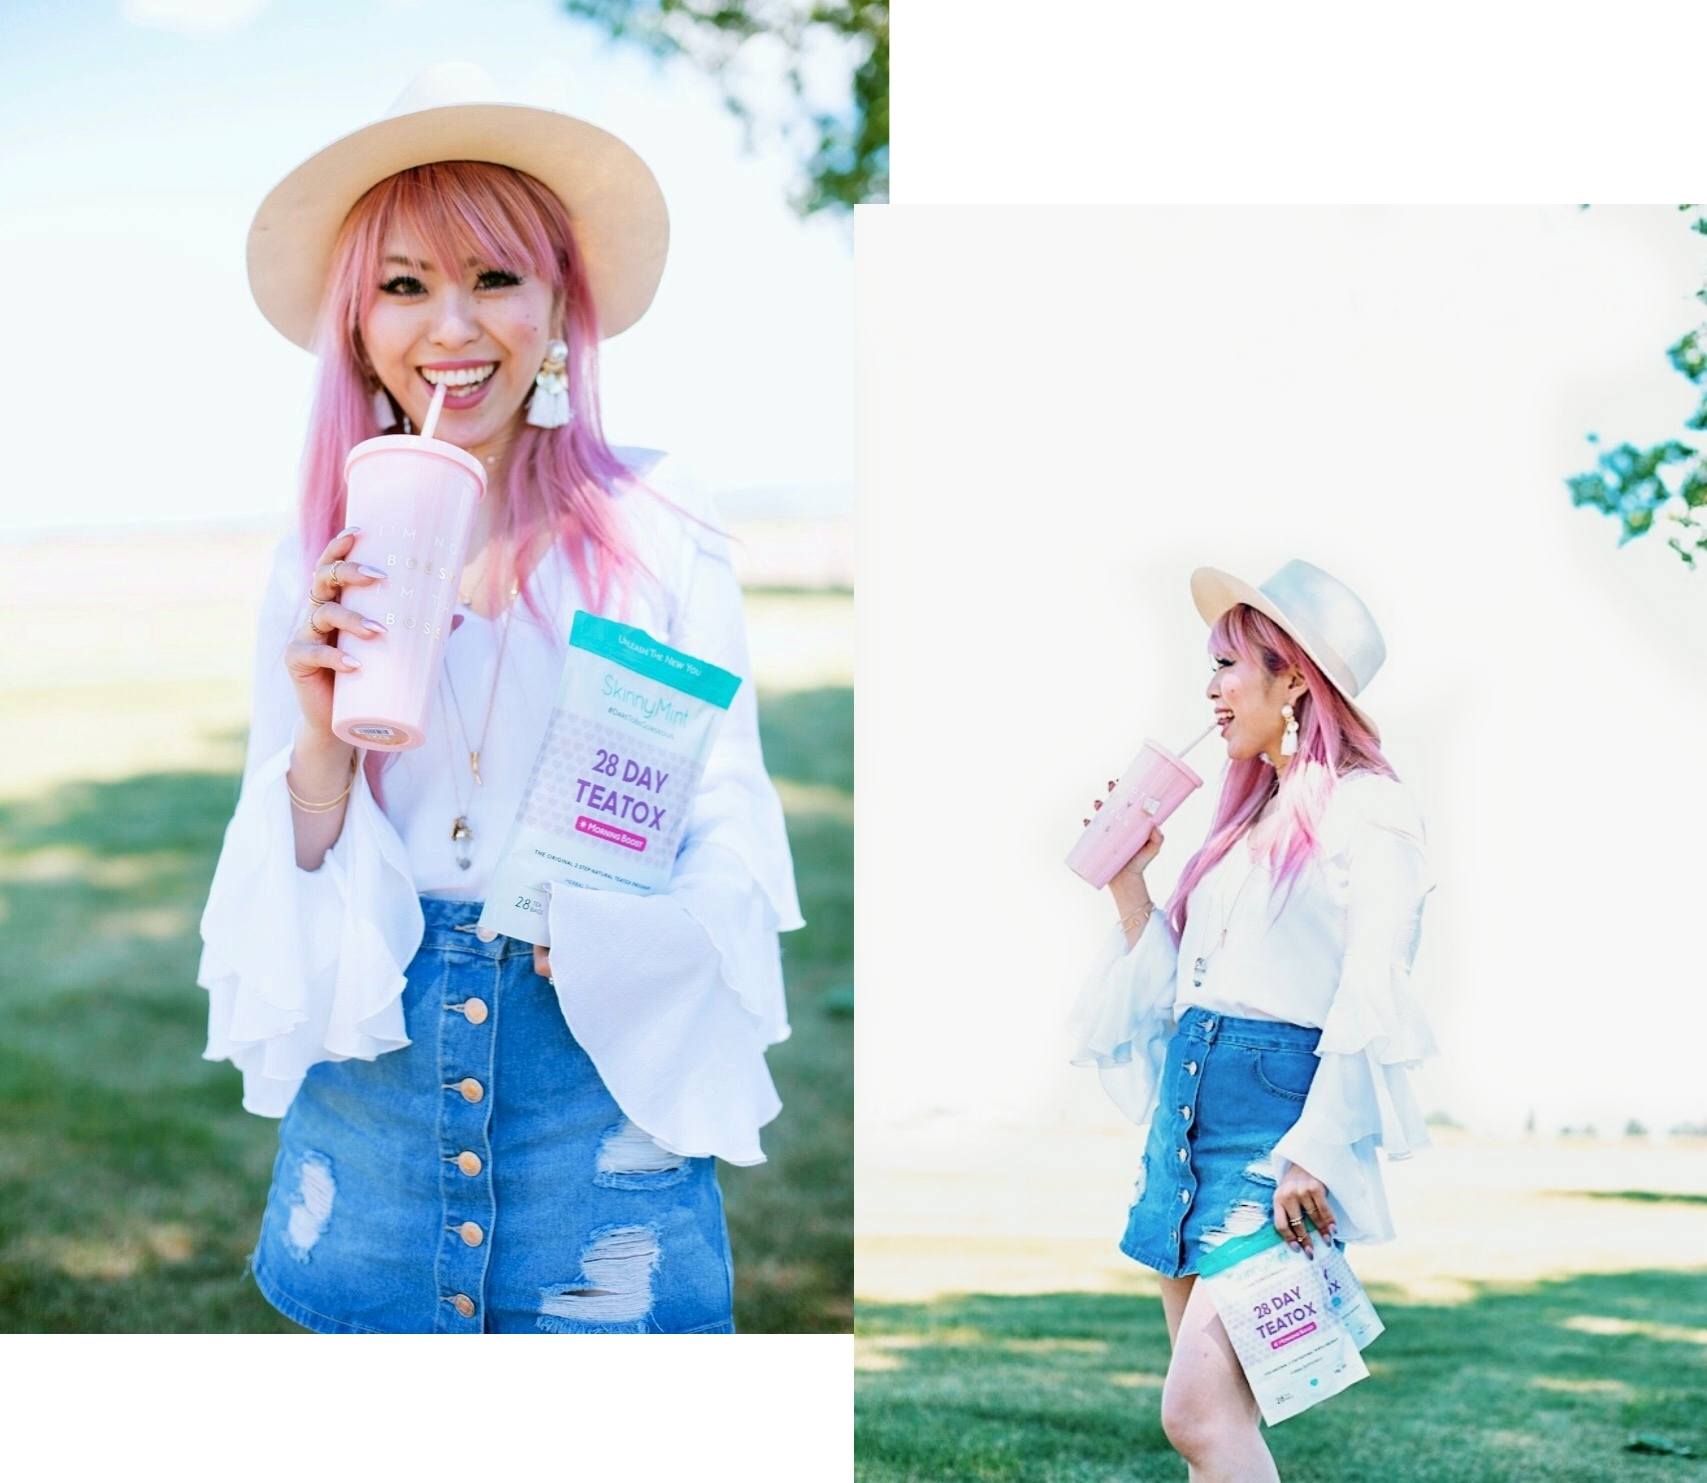 SkinnyMint Teatox - detox - exercise-healthy life style-all natural -Aika's Love Closet - Seattle Style Fashion Lifestyle Blogger - pink hair 5